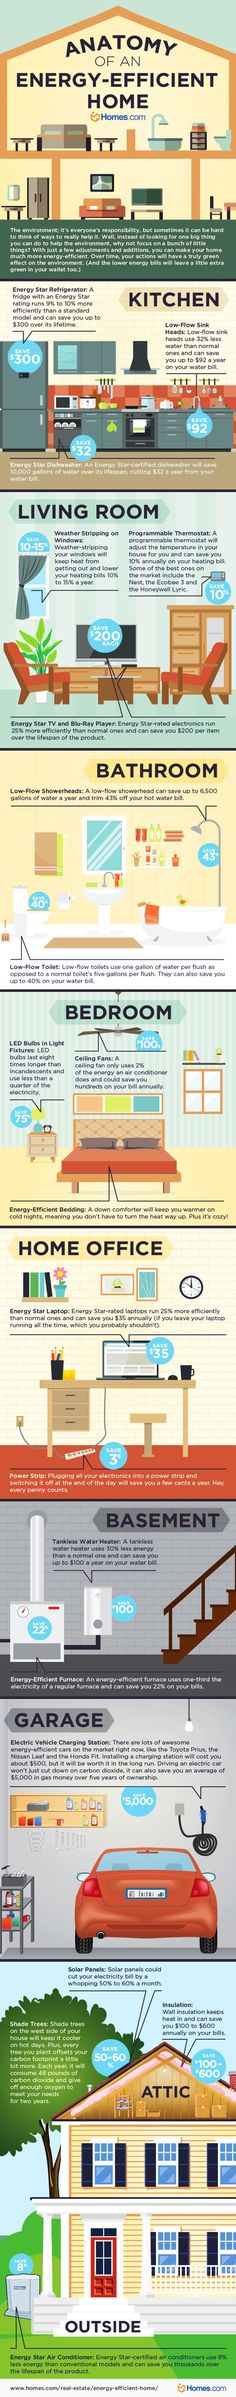 Energy Efficient Home Upgrades in Los Angeles For $0 Down -- Home Improvement Hub -- Via - How to Build an Energy Efficient Home Infographic. Topic: green building, home improvement, energy star appliance, house interior design. #HomeEnergyEfficiency